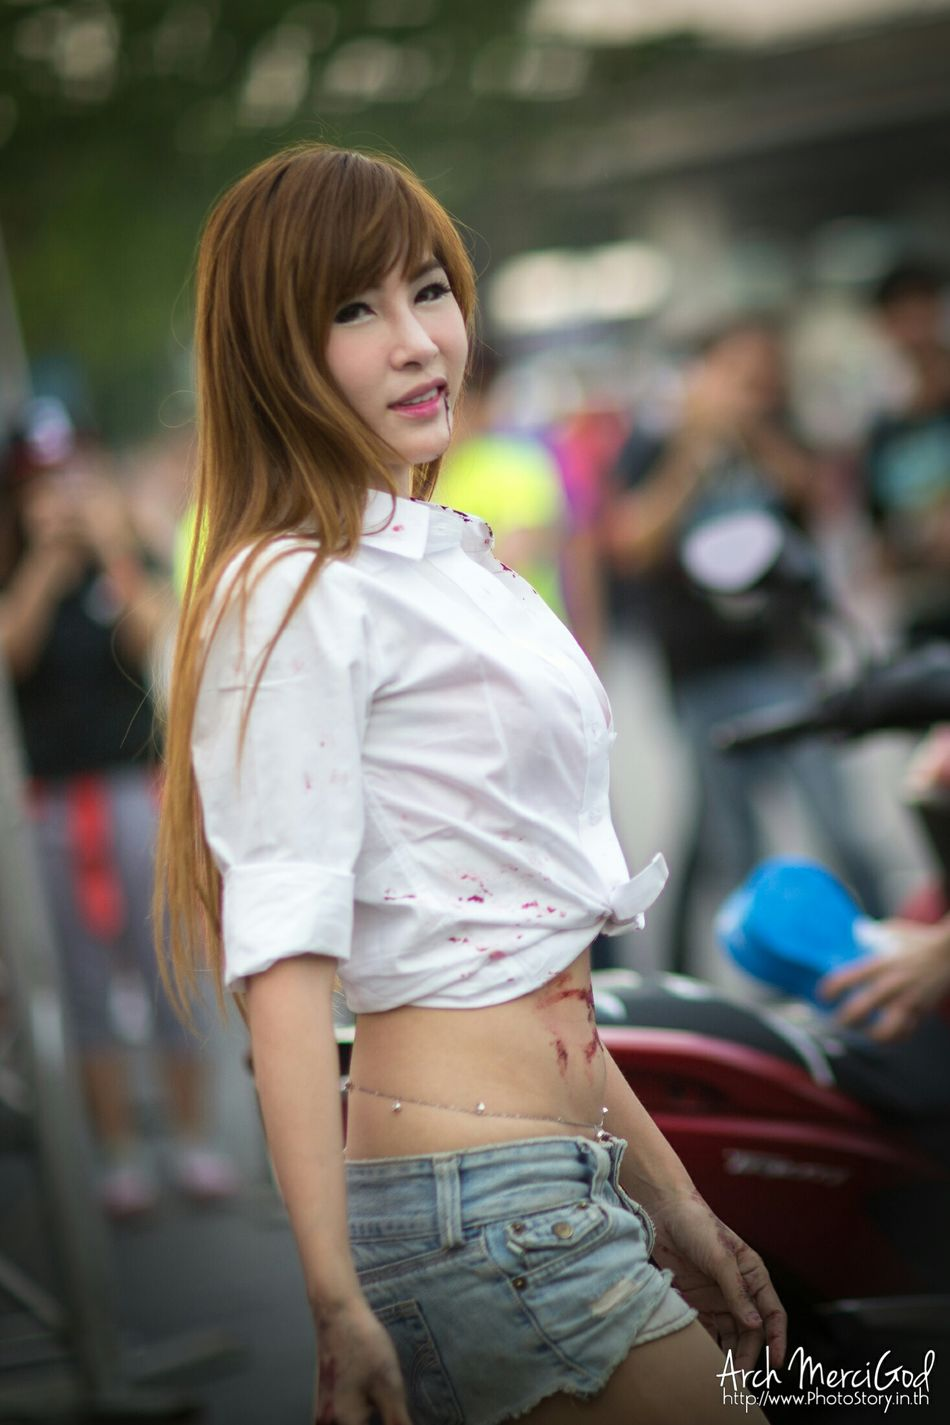 Run For Your Lifes Thailand http://www.photostory.in.th http://fb.me/ArchMerciGod Beautiful Girl Modelgirl RFYLasia Portrait Sexygirl Rfylth RFYL Model Pose Cute Yamaha